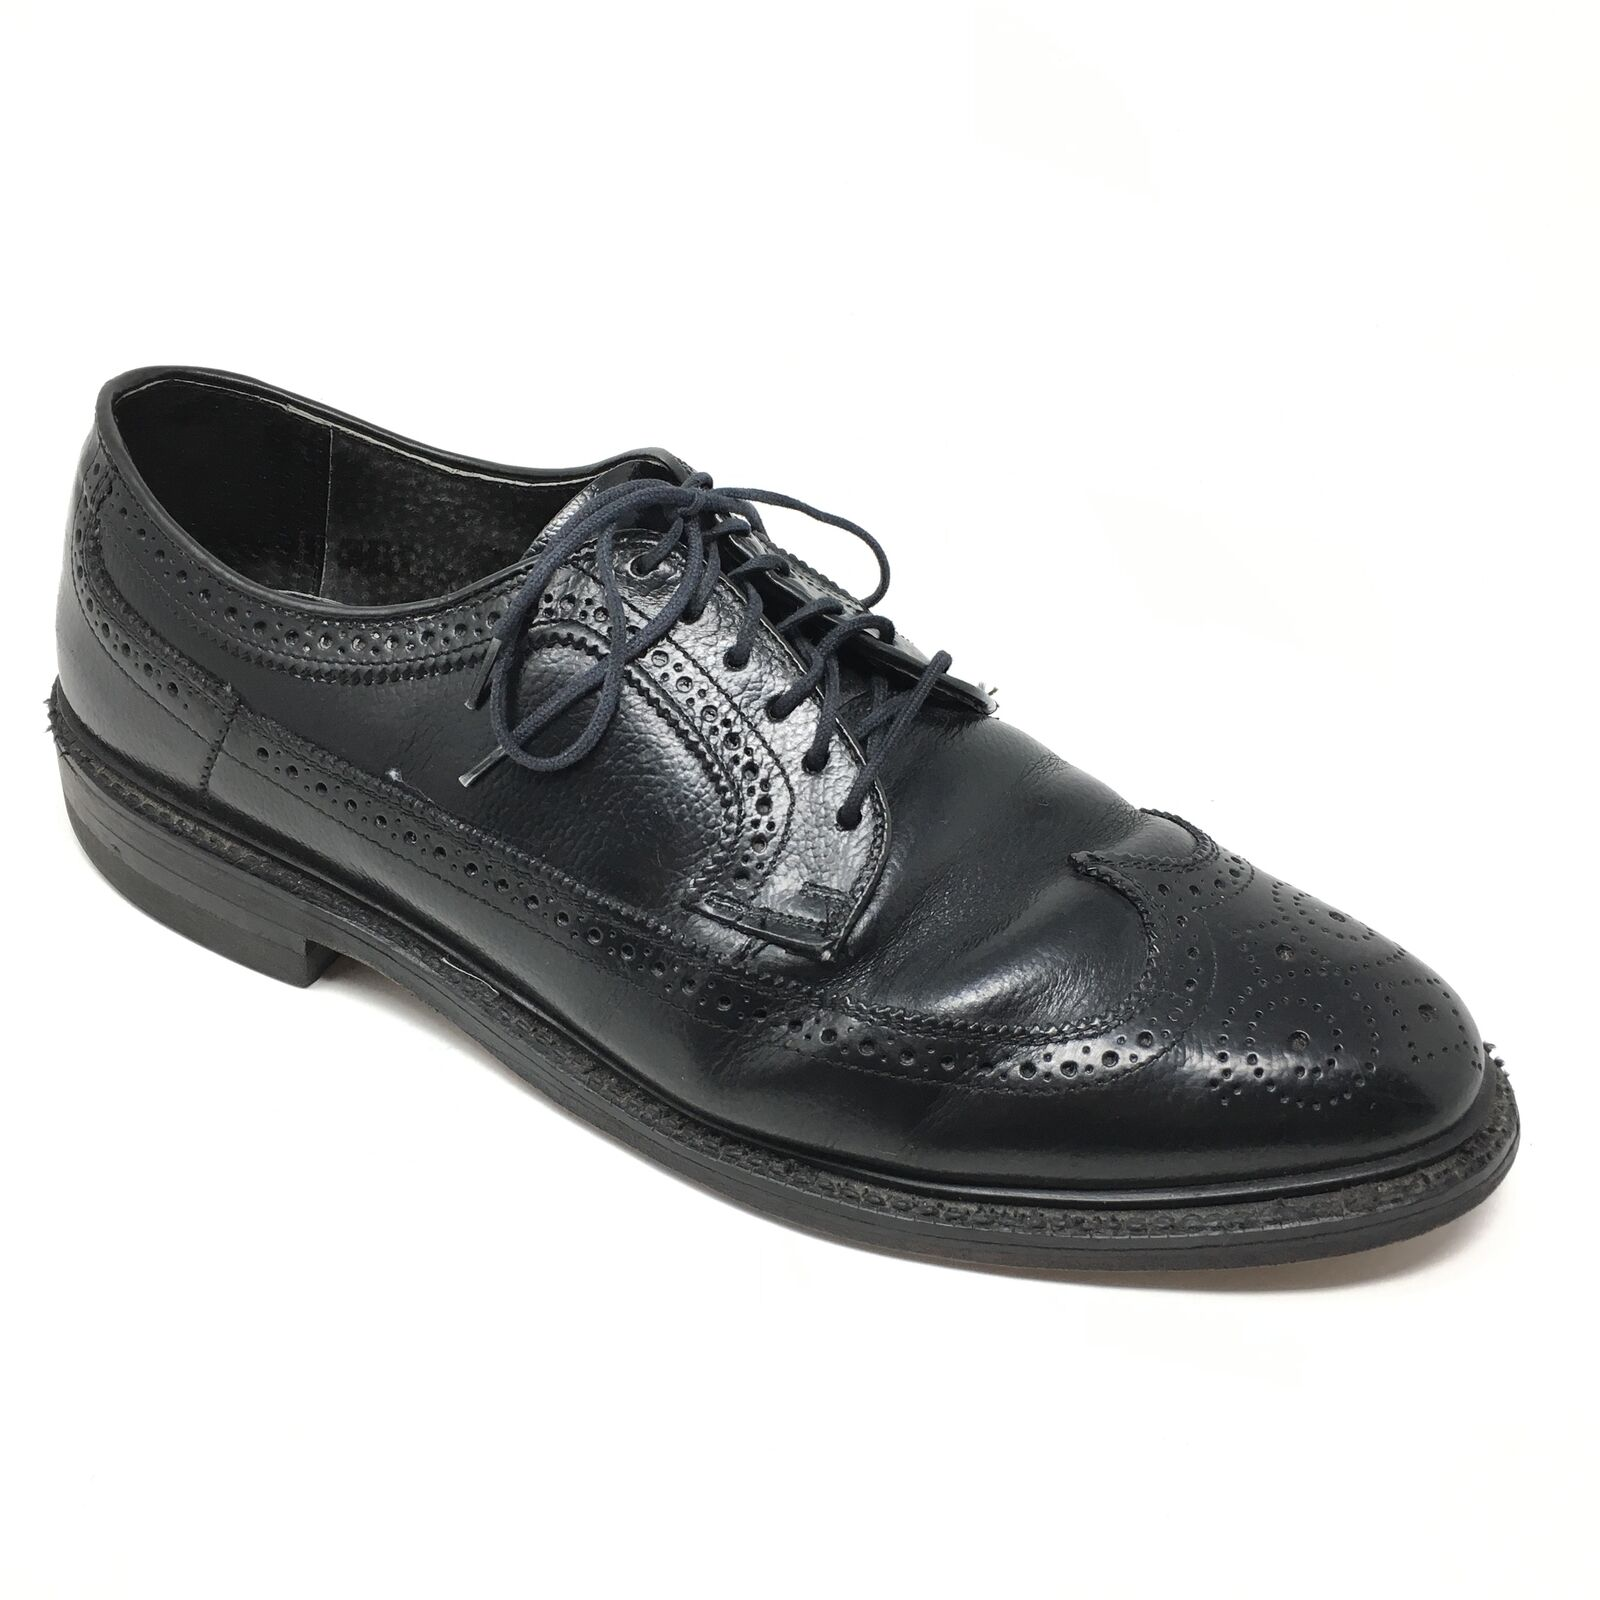 Men's Hanover 3365 Oxfords Dress shoes Size 10.5D Black Wingtip Brogue Grain W14